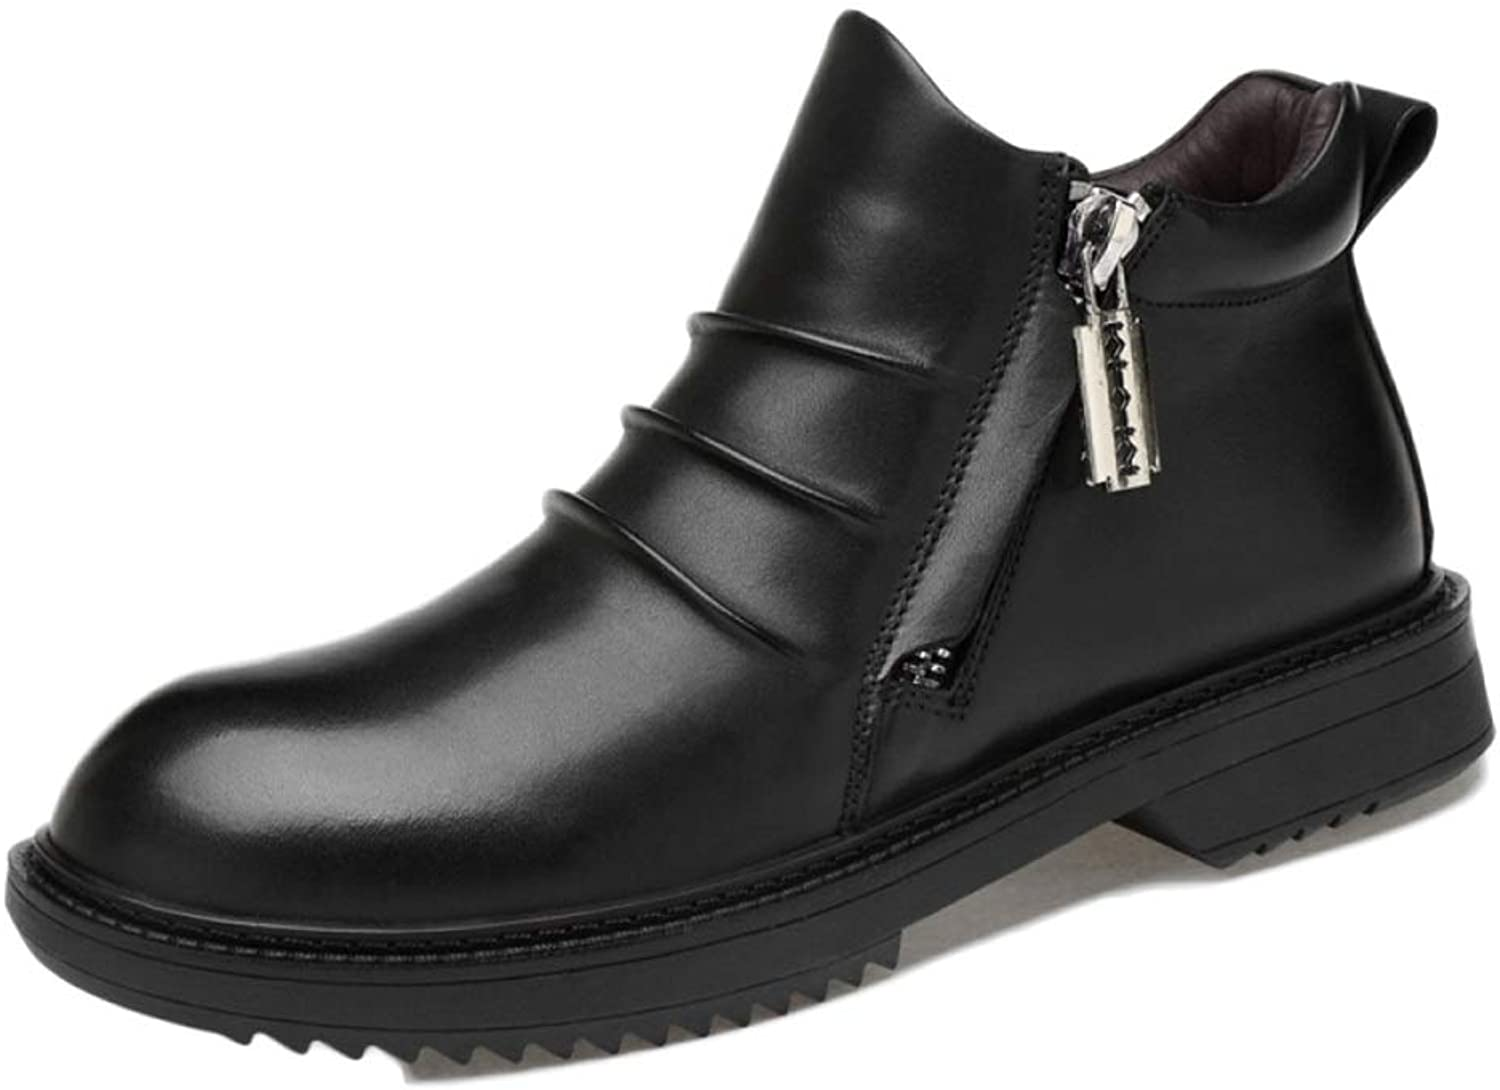 Men's Boots Black Leather Oxblood Safety Brogue Classic High Help Martin Boots